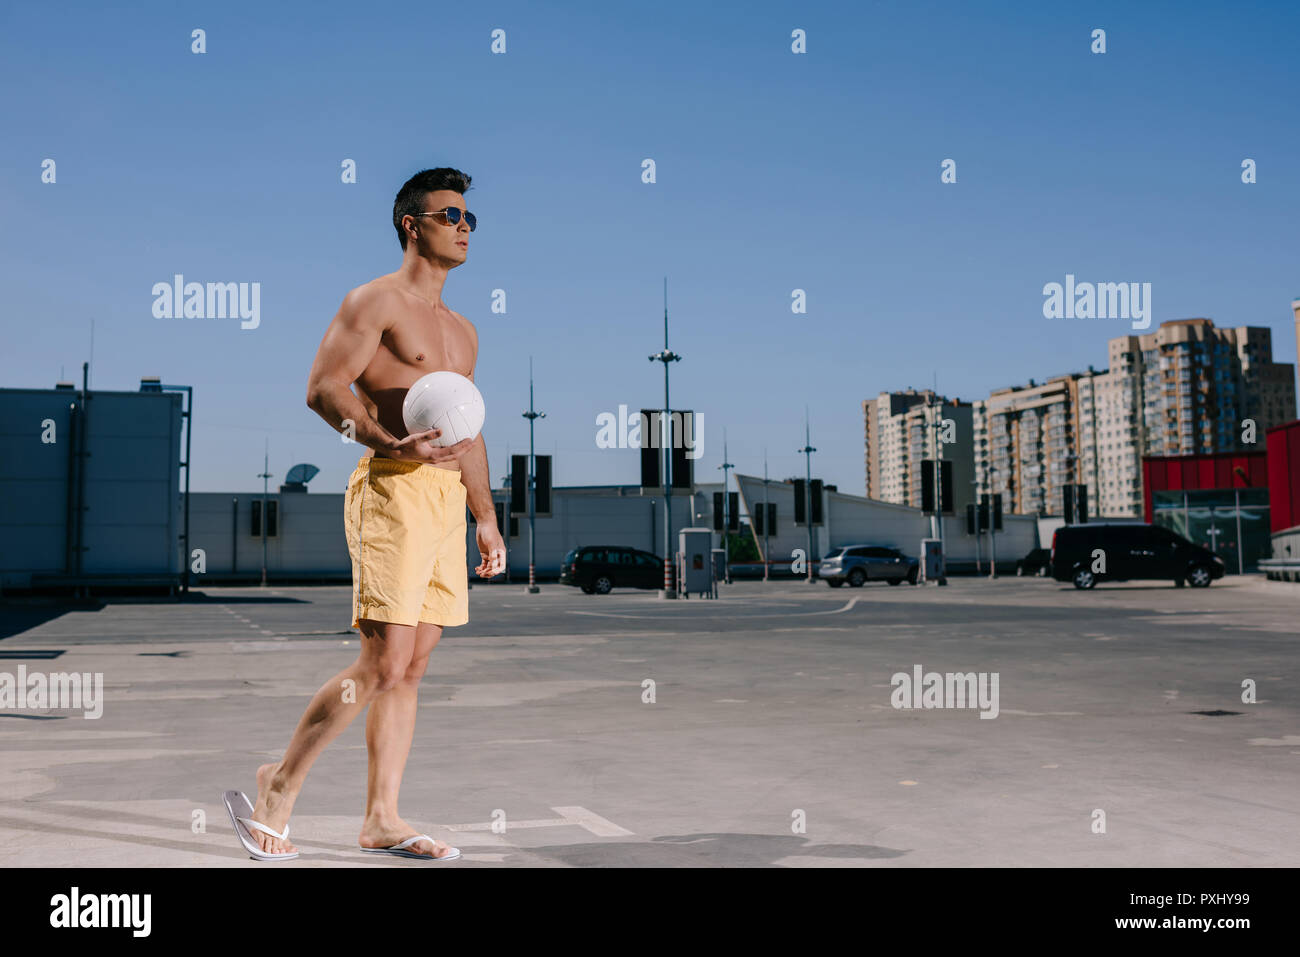 L'homme torse nu avec le volley-ball ball le parking gratuit Photo Stock